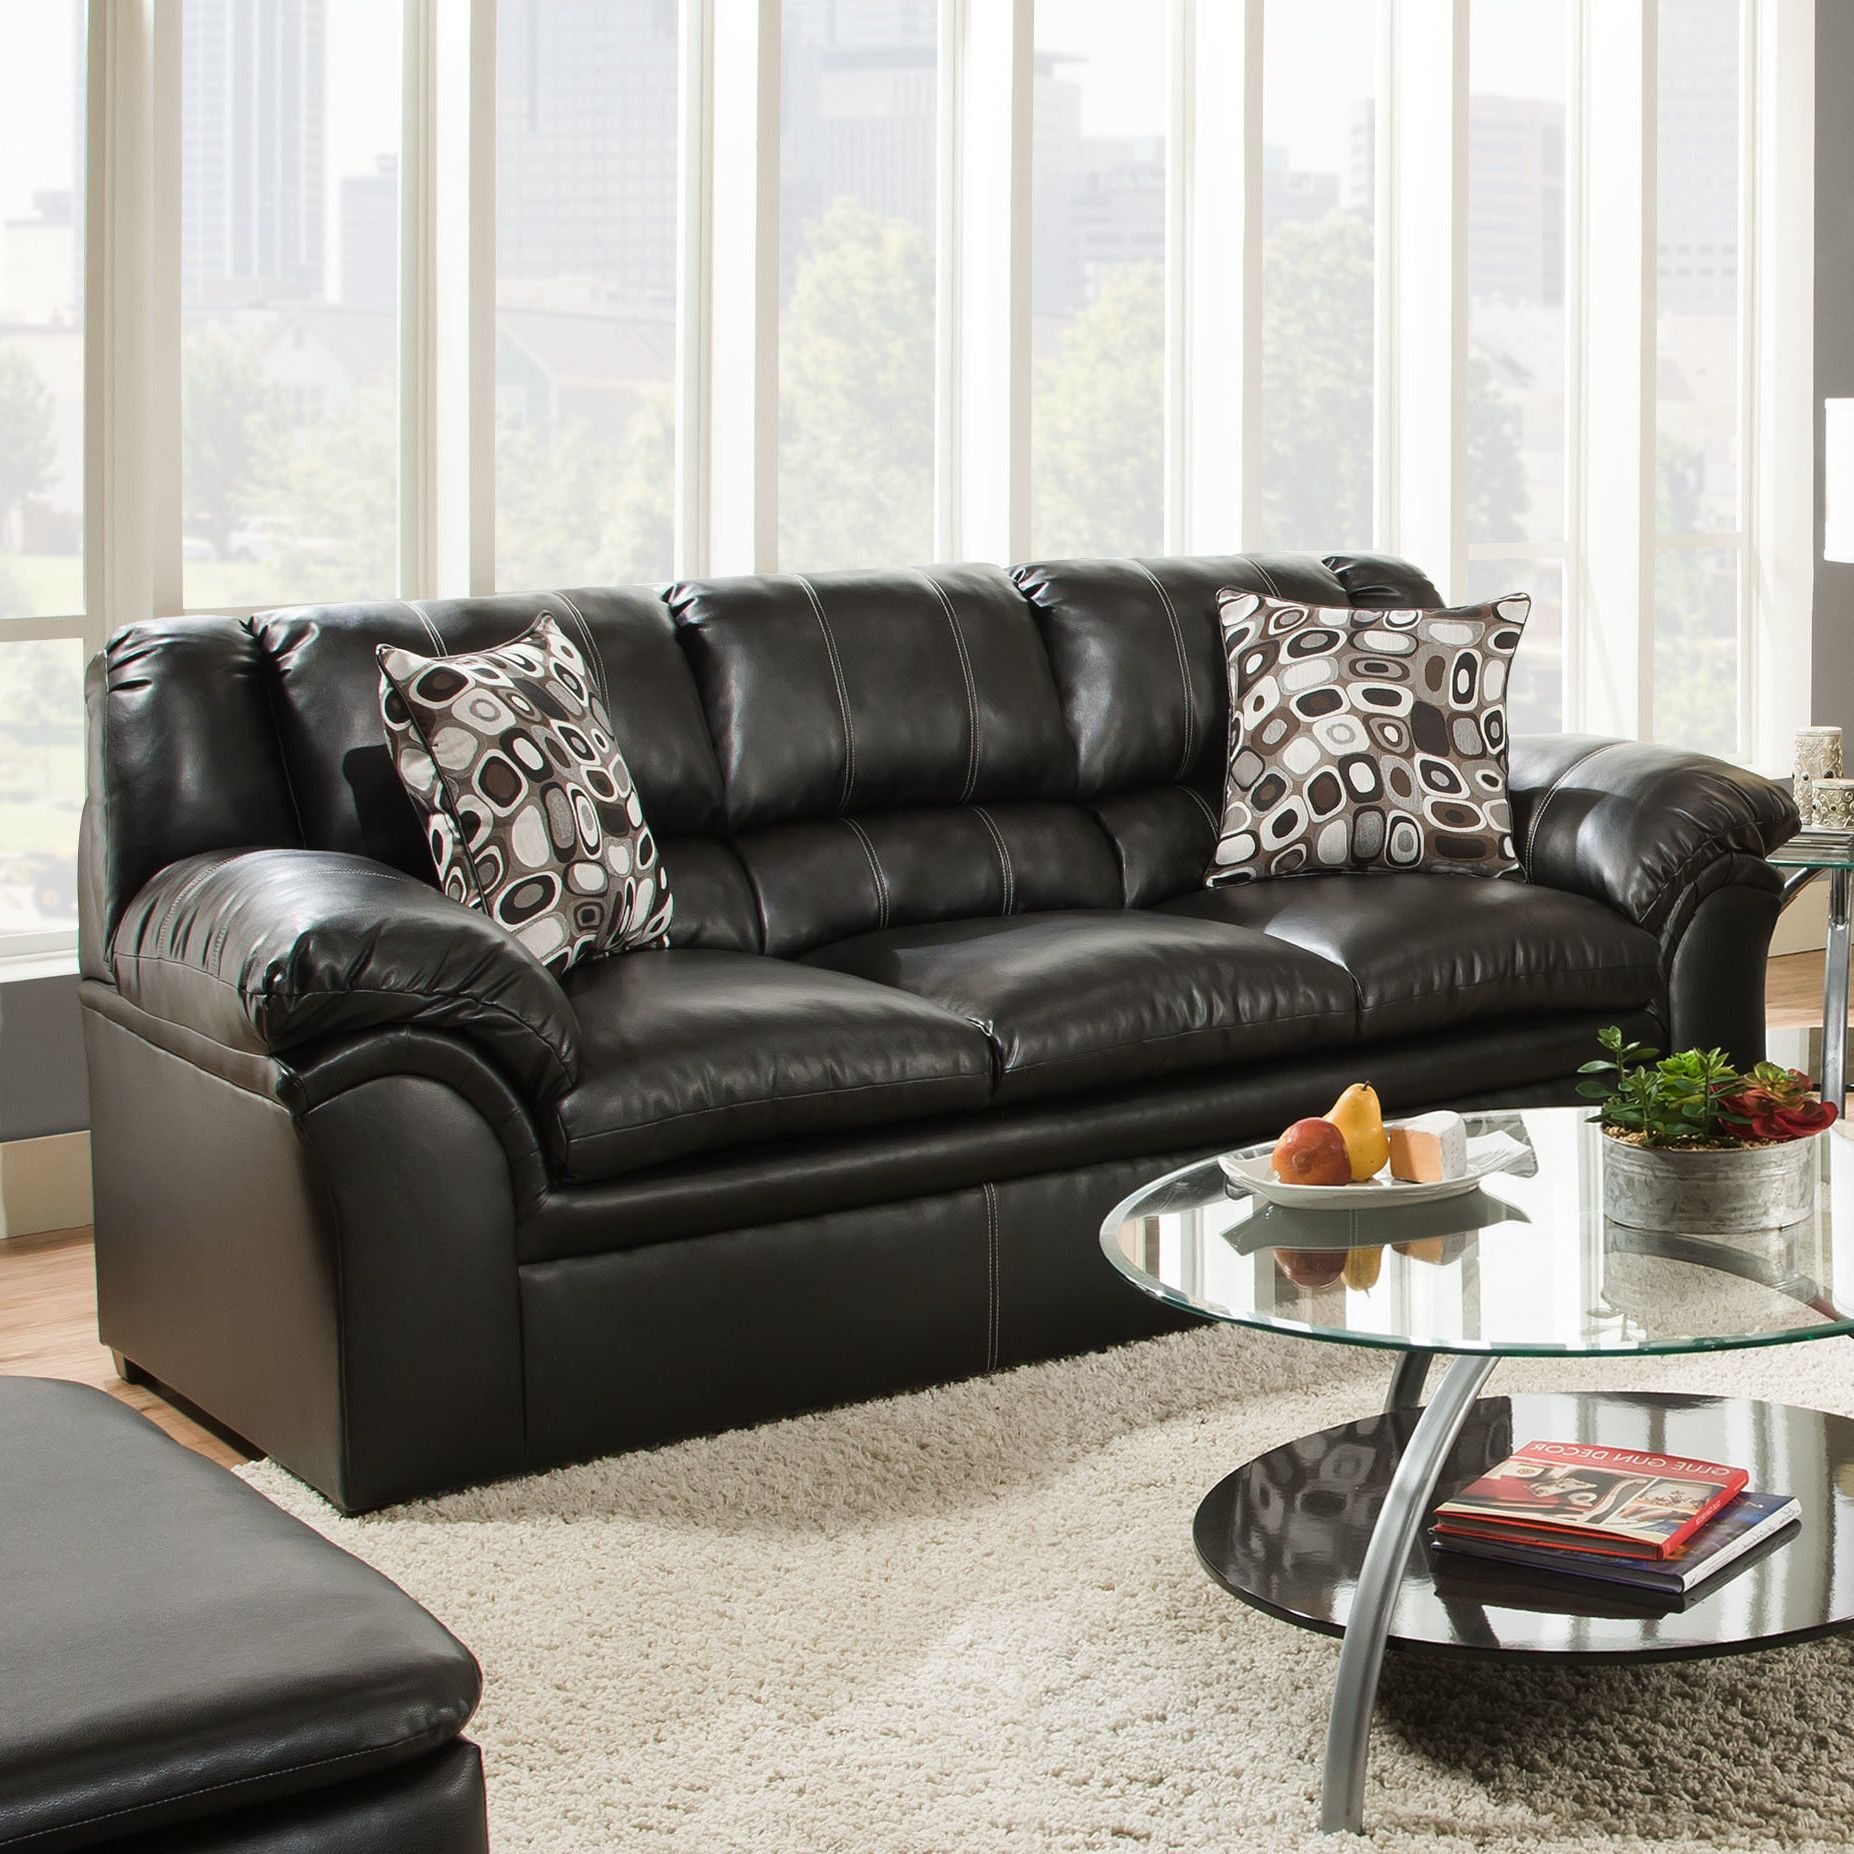 Nice Simmons Harbortown Sofa , Inspirational Simmons Harbortown